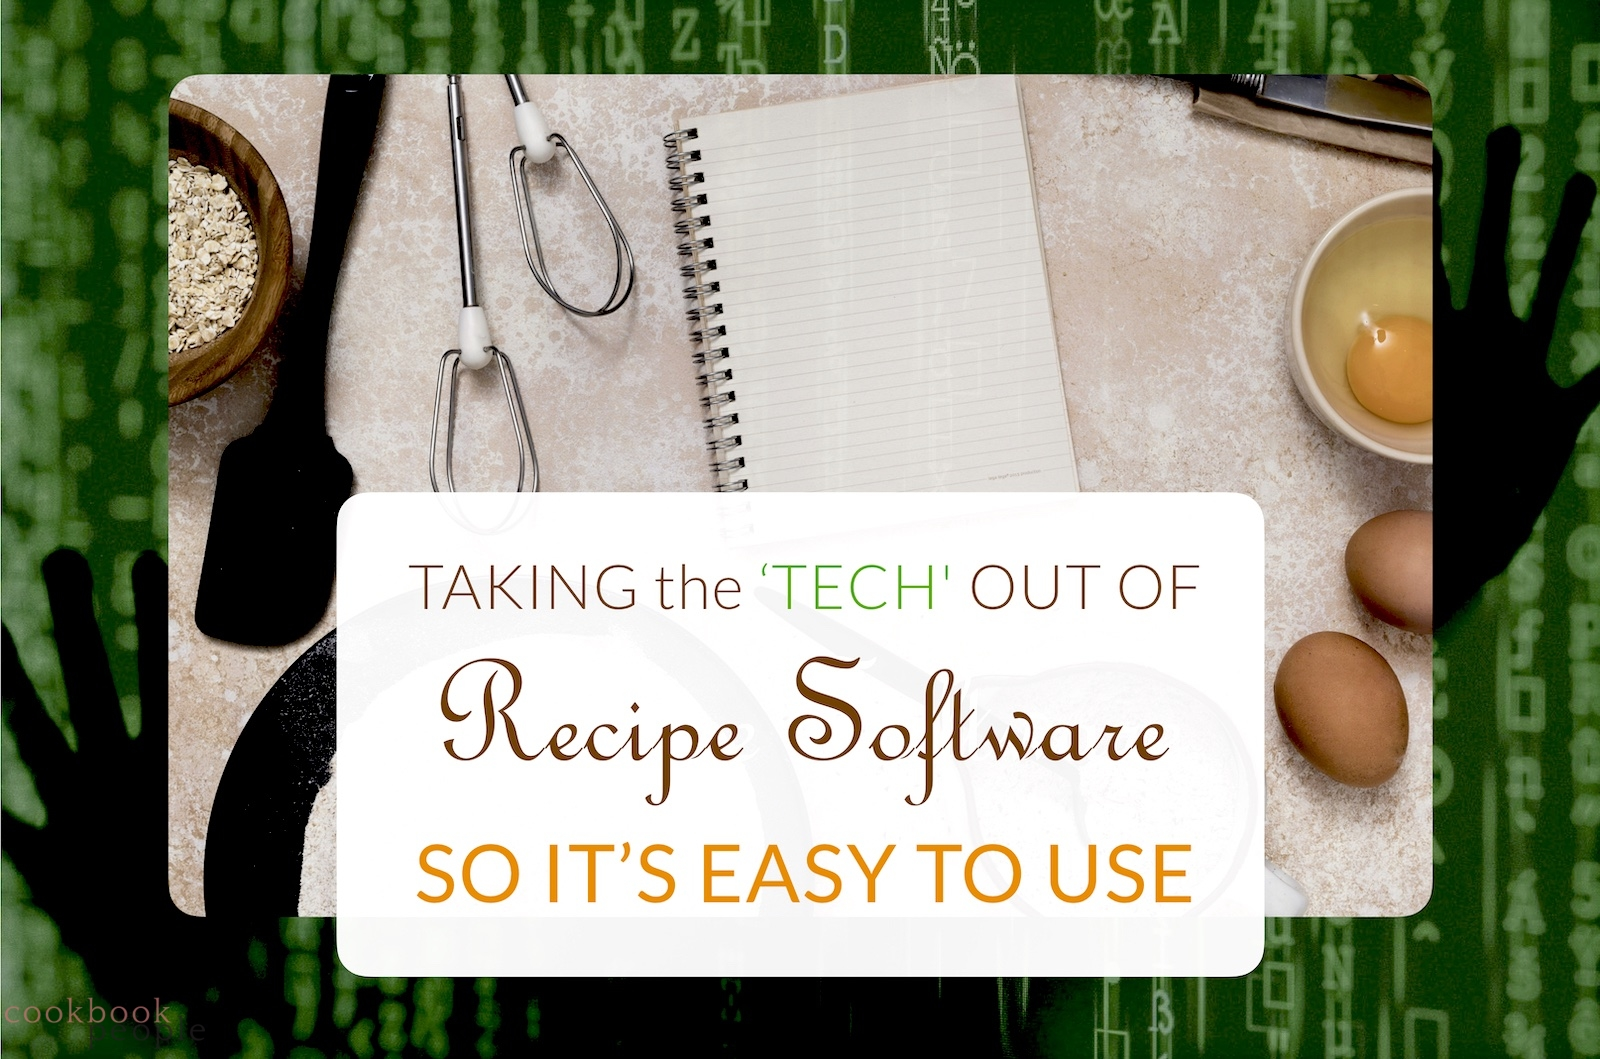 hands trapped in green code matrix overlaid with cooking utensils and blank spiral notebook and title: Taking the 'Tech' out of Recipe Software so It's Easy to Use